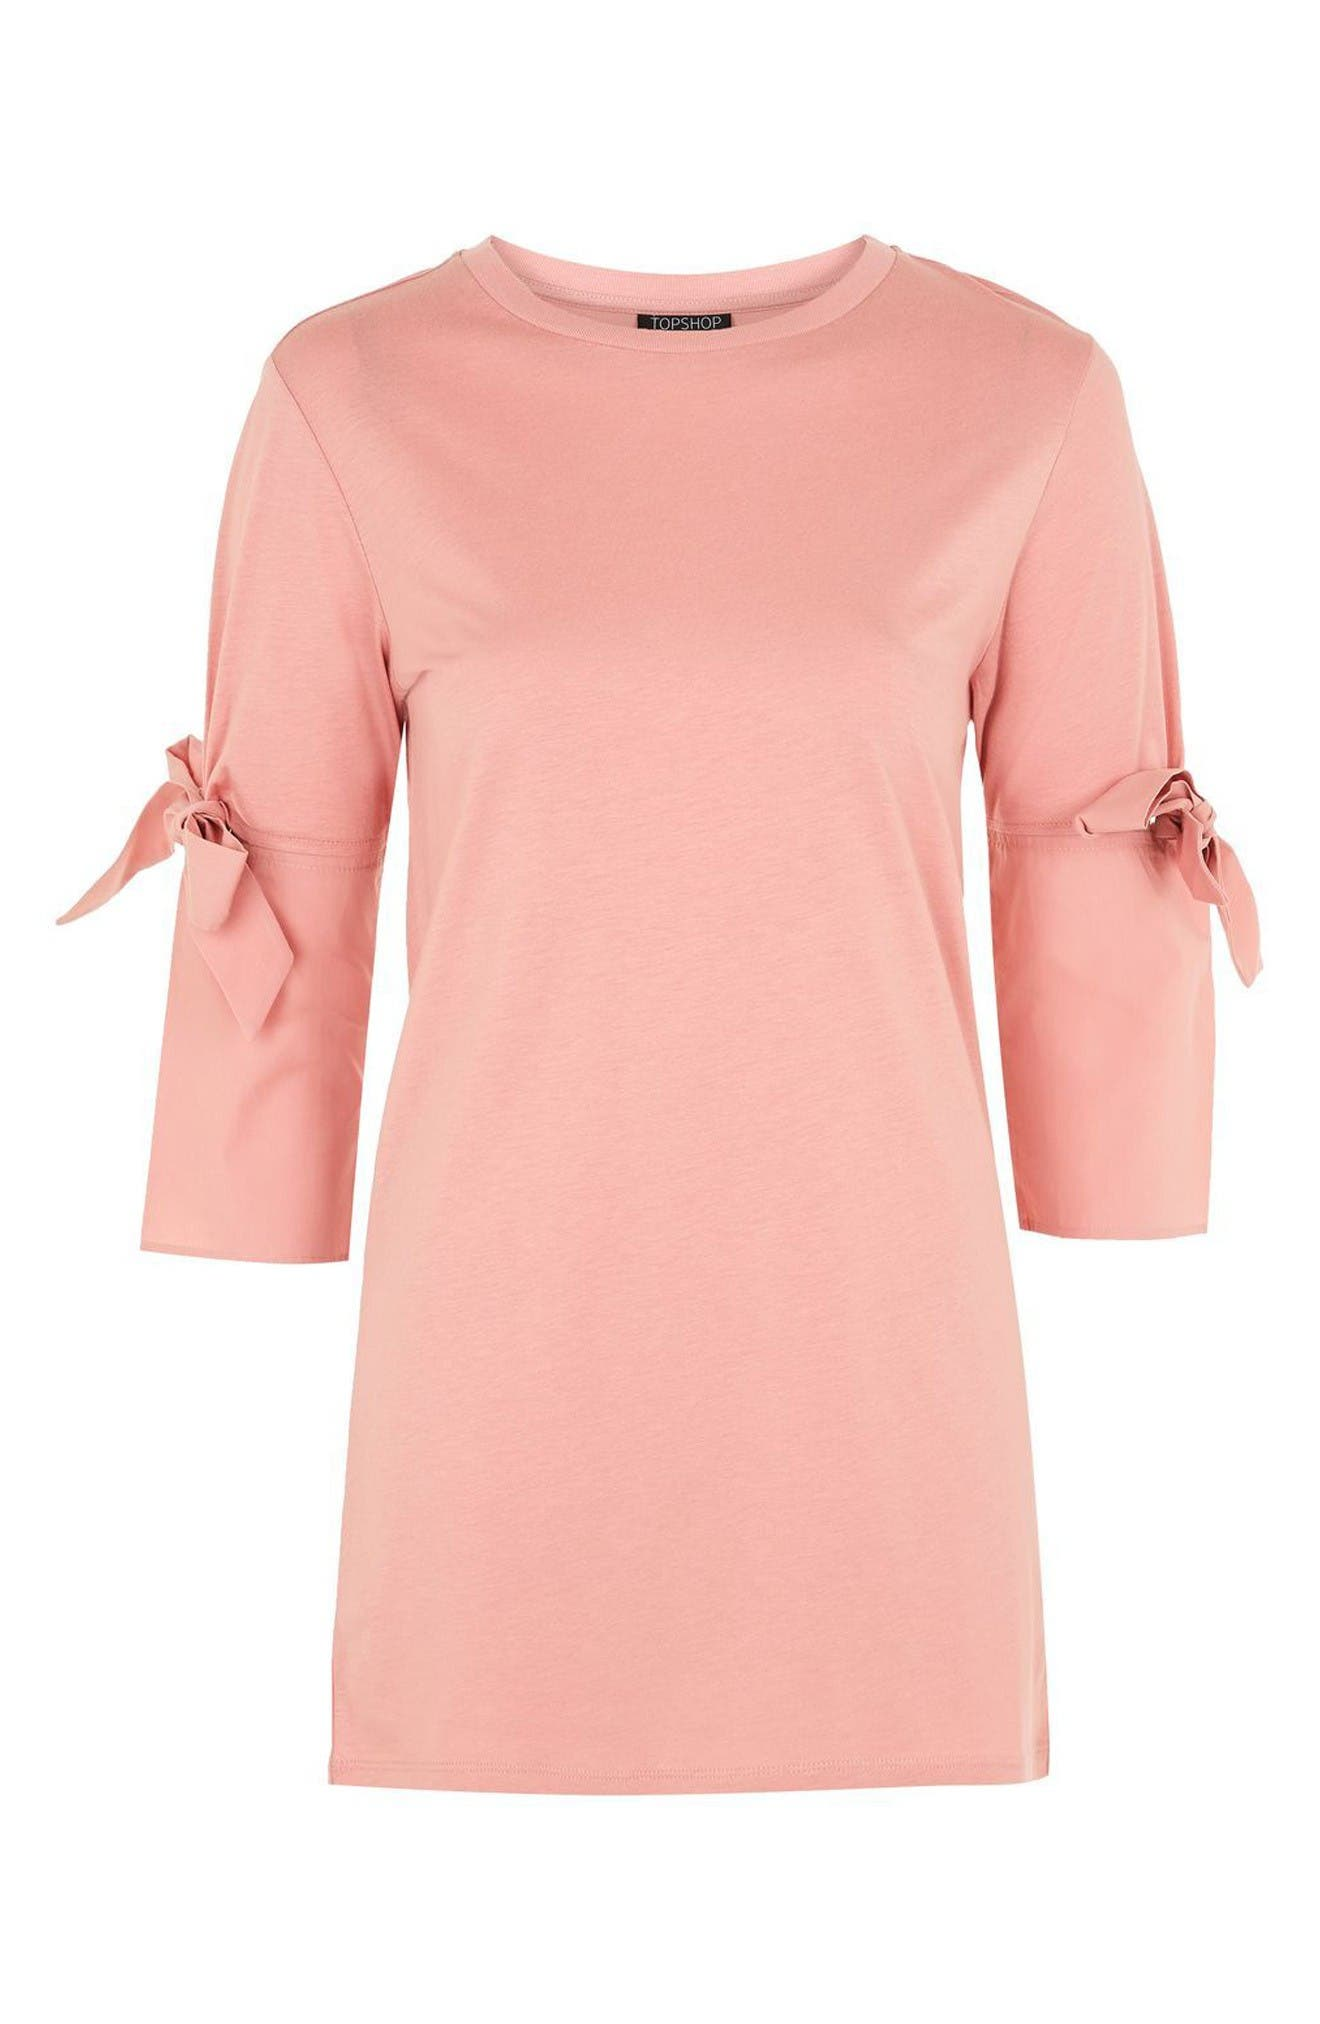 Alternate Image 1 Selected - Topshop Tie Sleeve Longline Tee